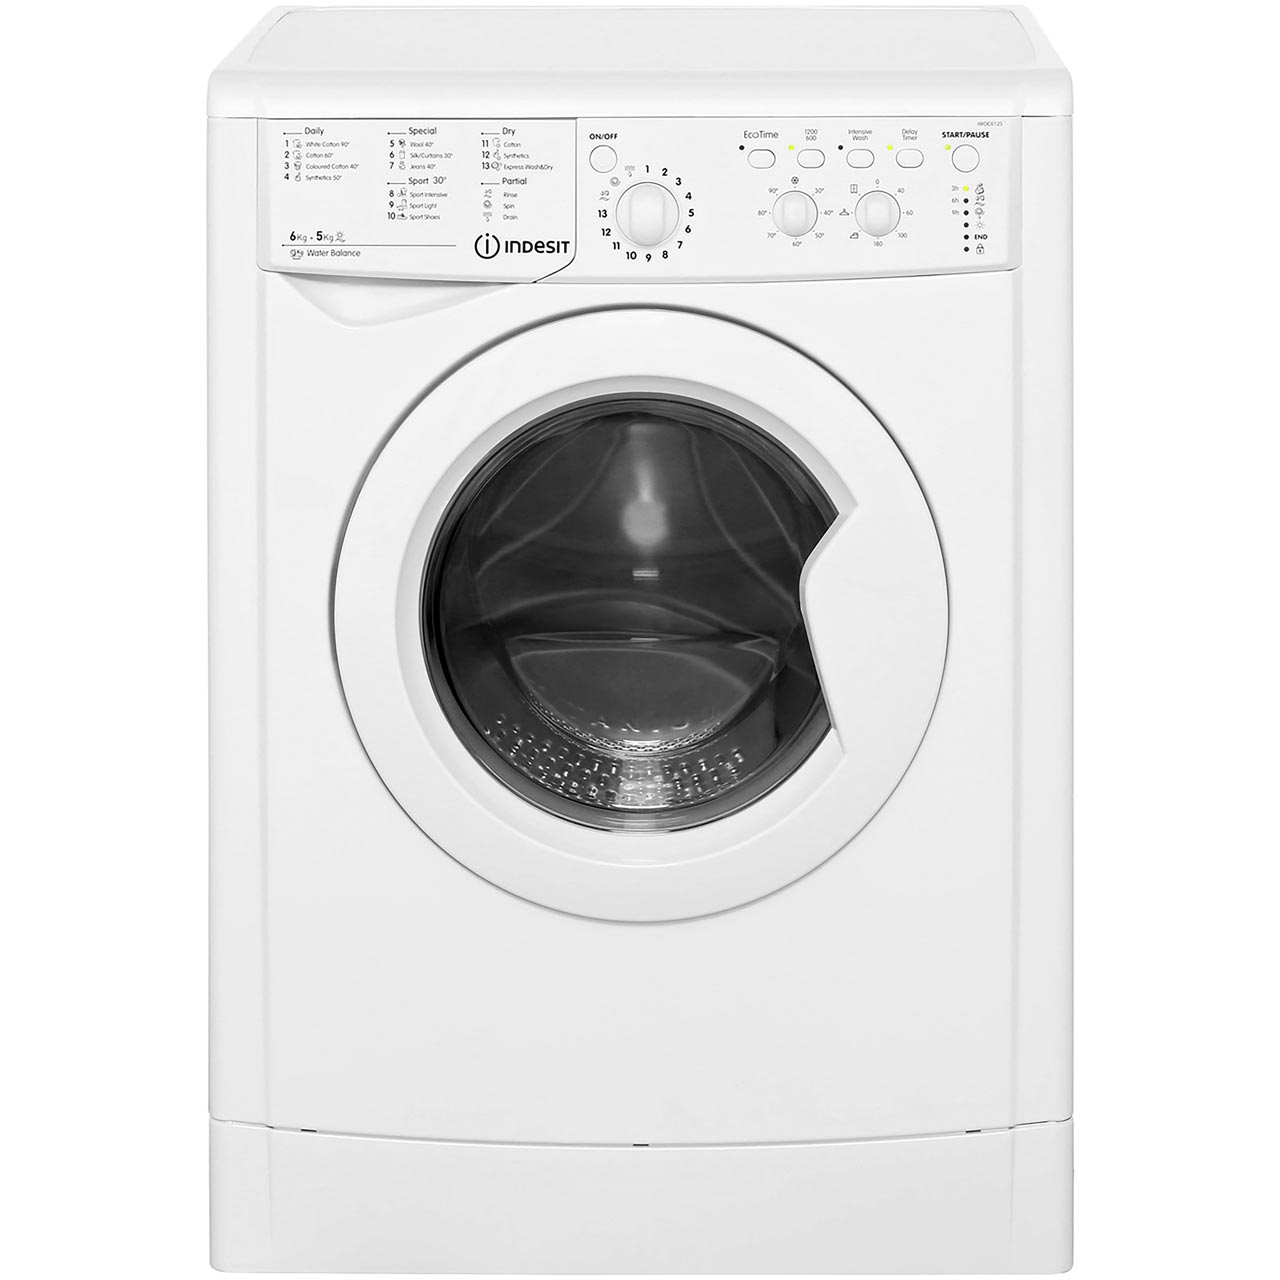 Iwdc6125 Wh Indesit Washer Dryer White Ao Com